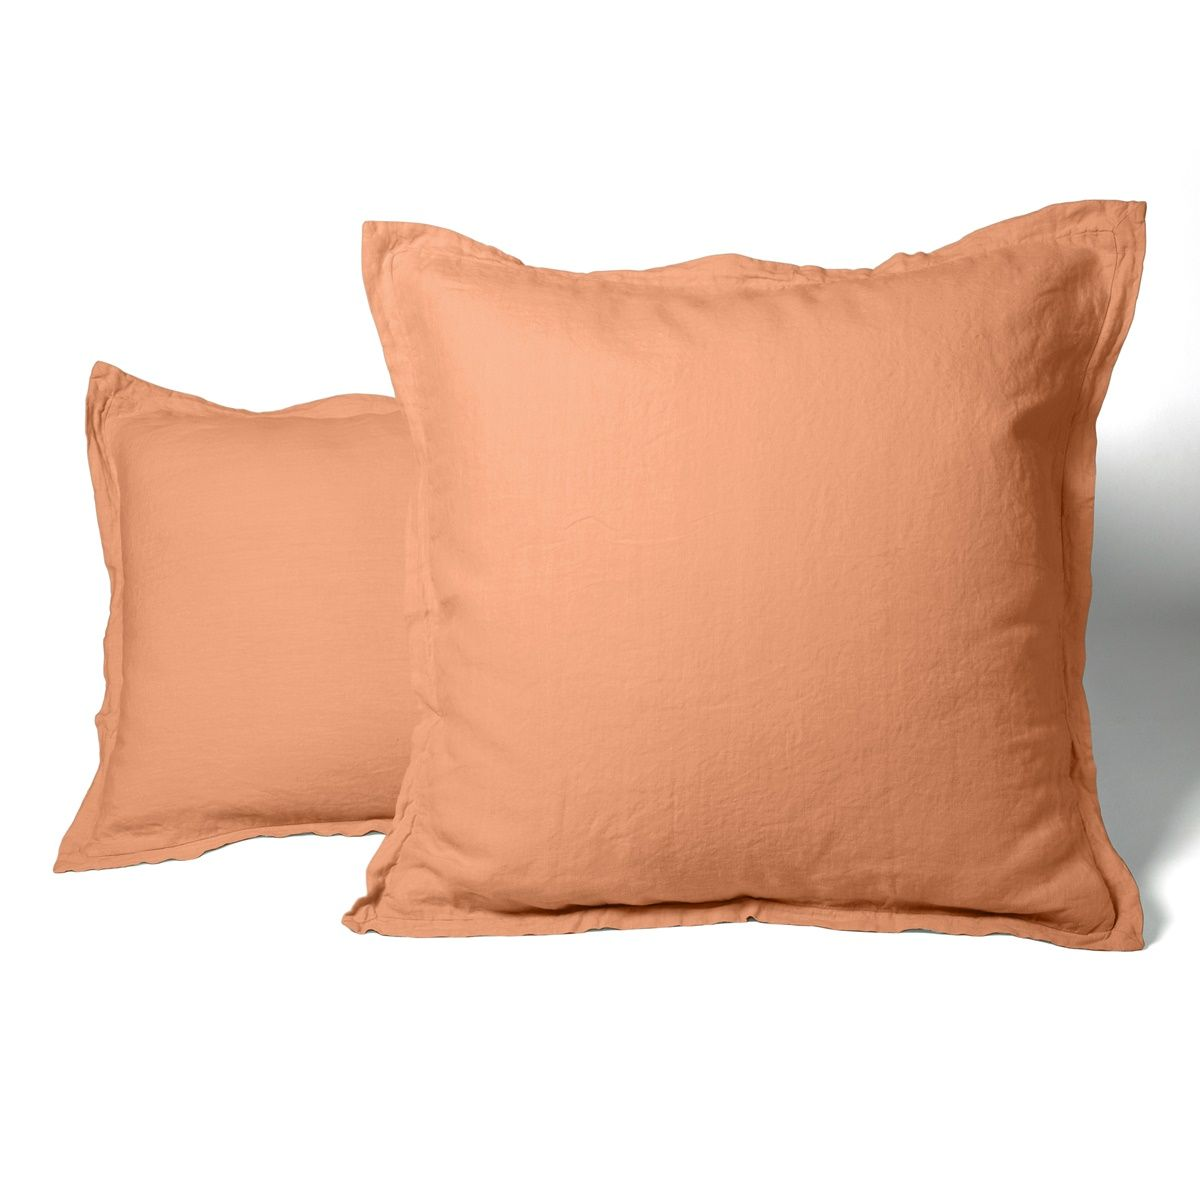 Pillow case washed linen orange | Linge de lit | Tradition des Vosges